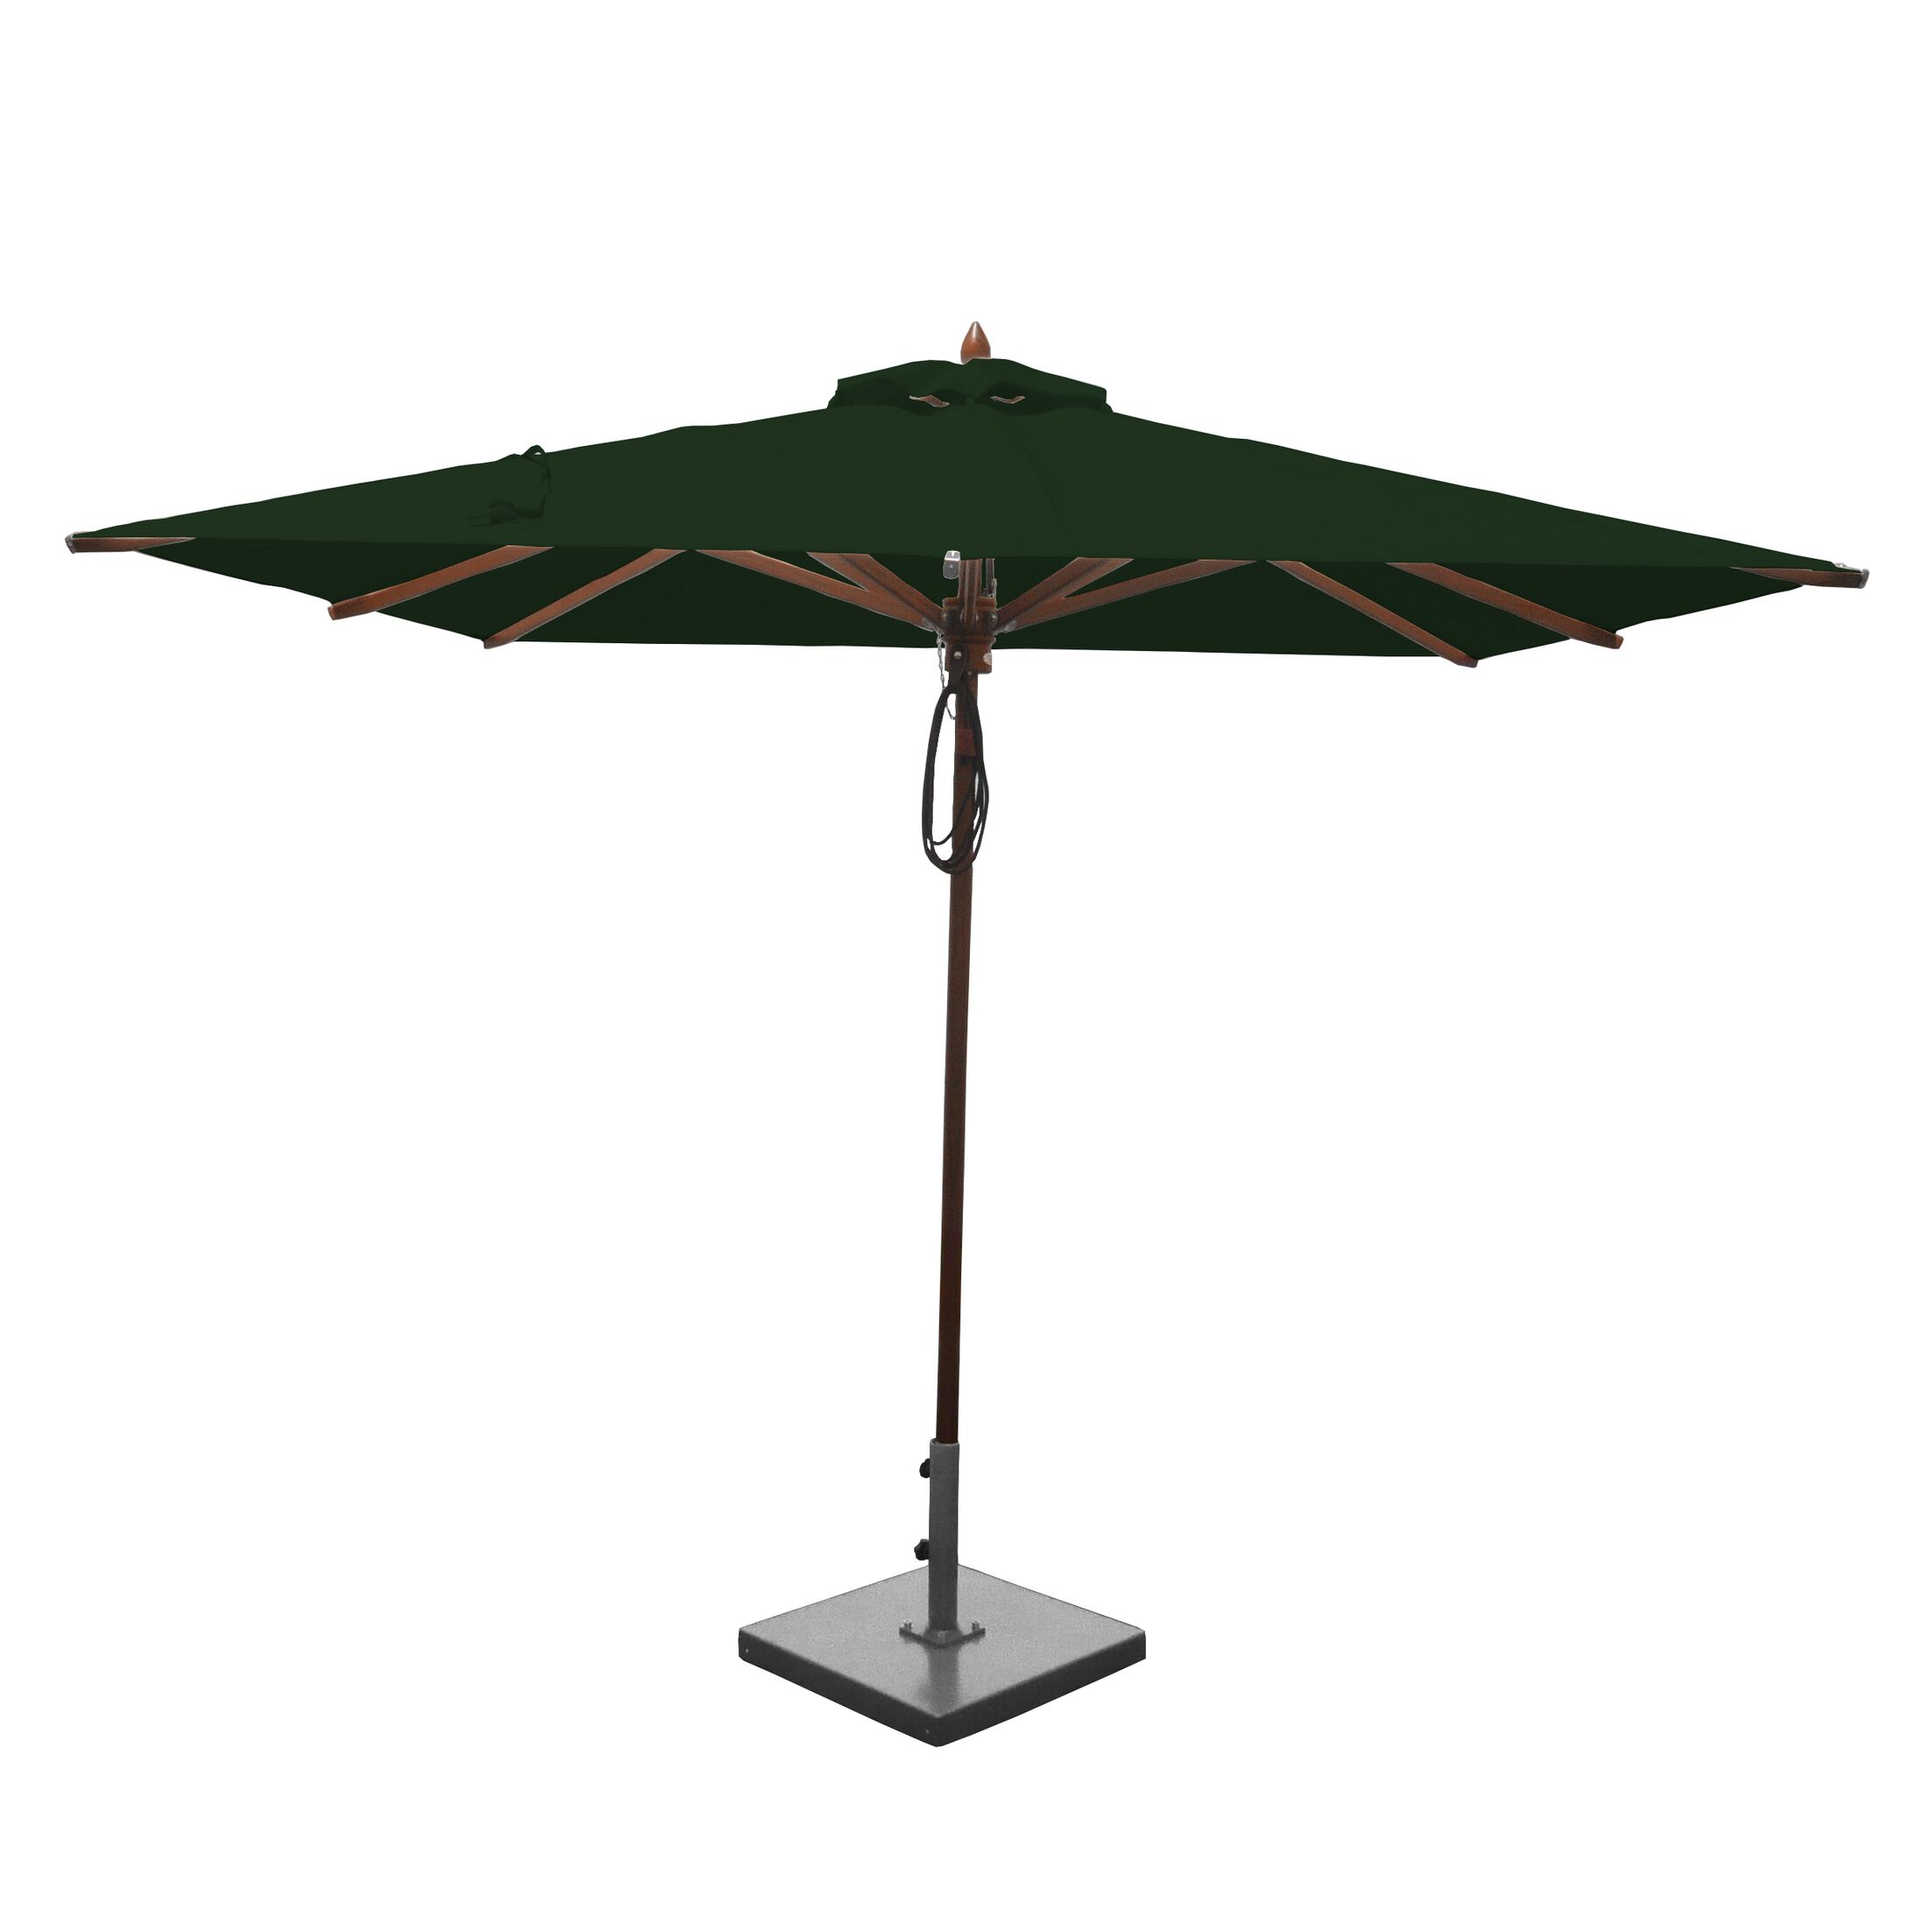 Smithshire 8' Square Market Umbrella Fabric: Forest Green